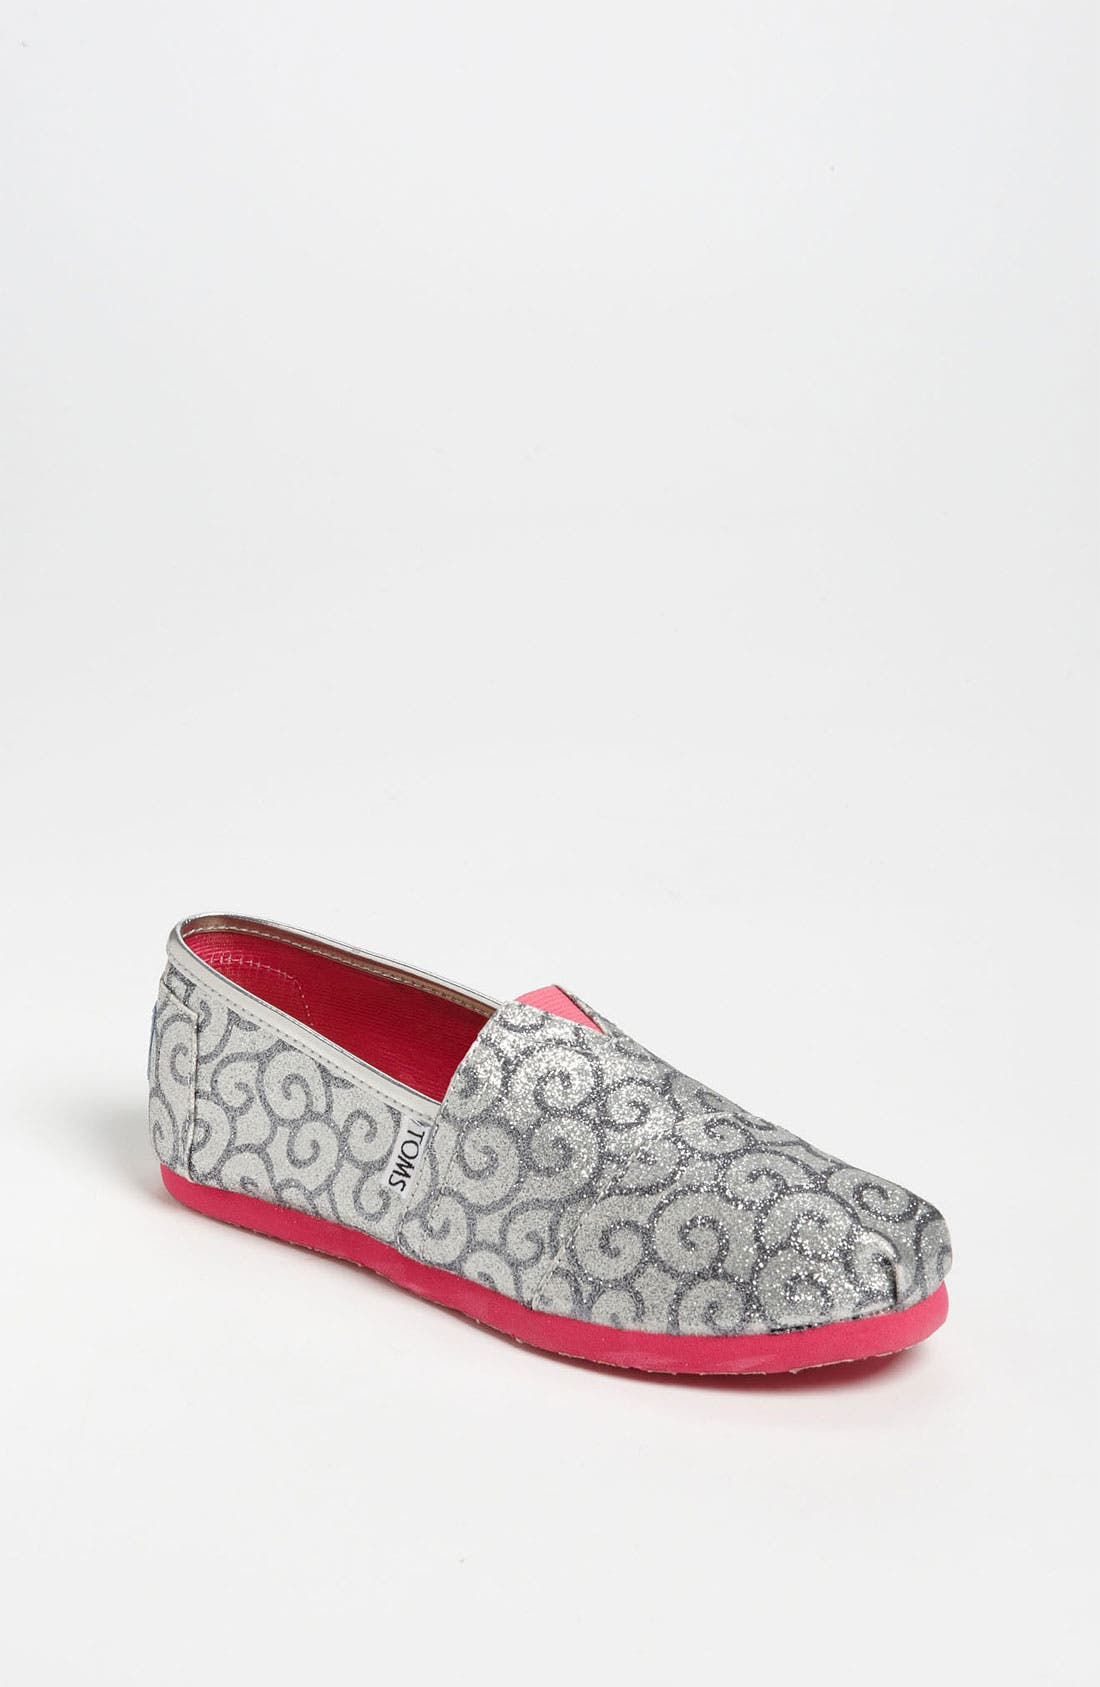 Main Image - TOMS 'Classic Youth - Block Glitter' Slip-On (Toddler, Little Kid & Big Kid)